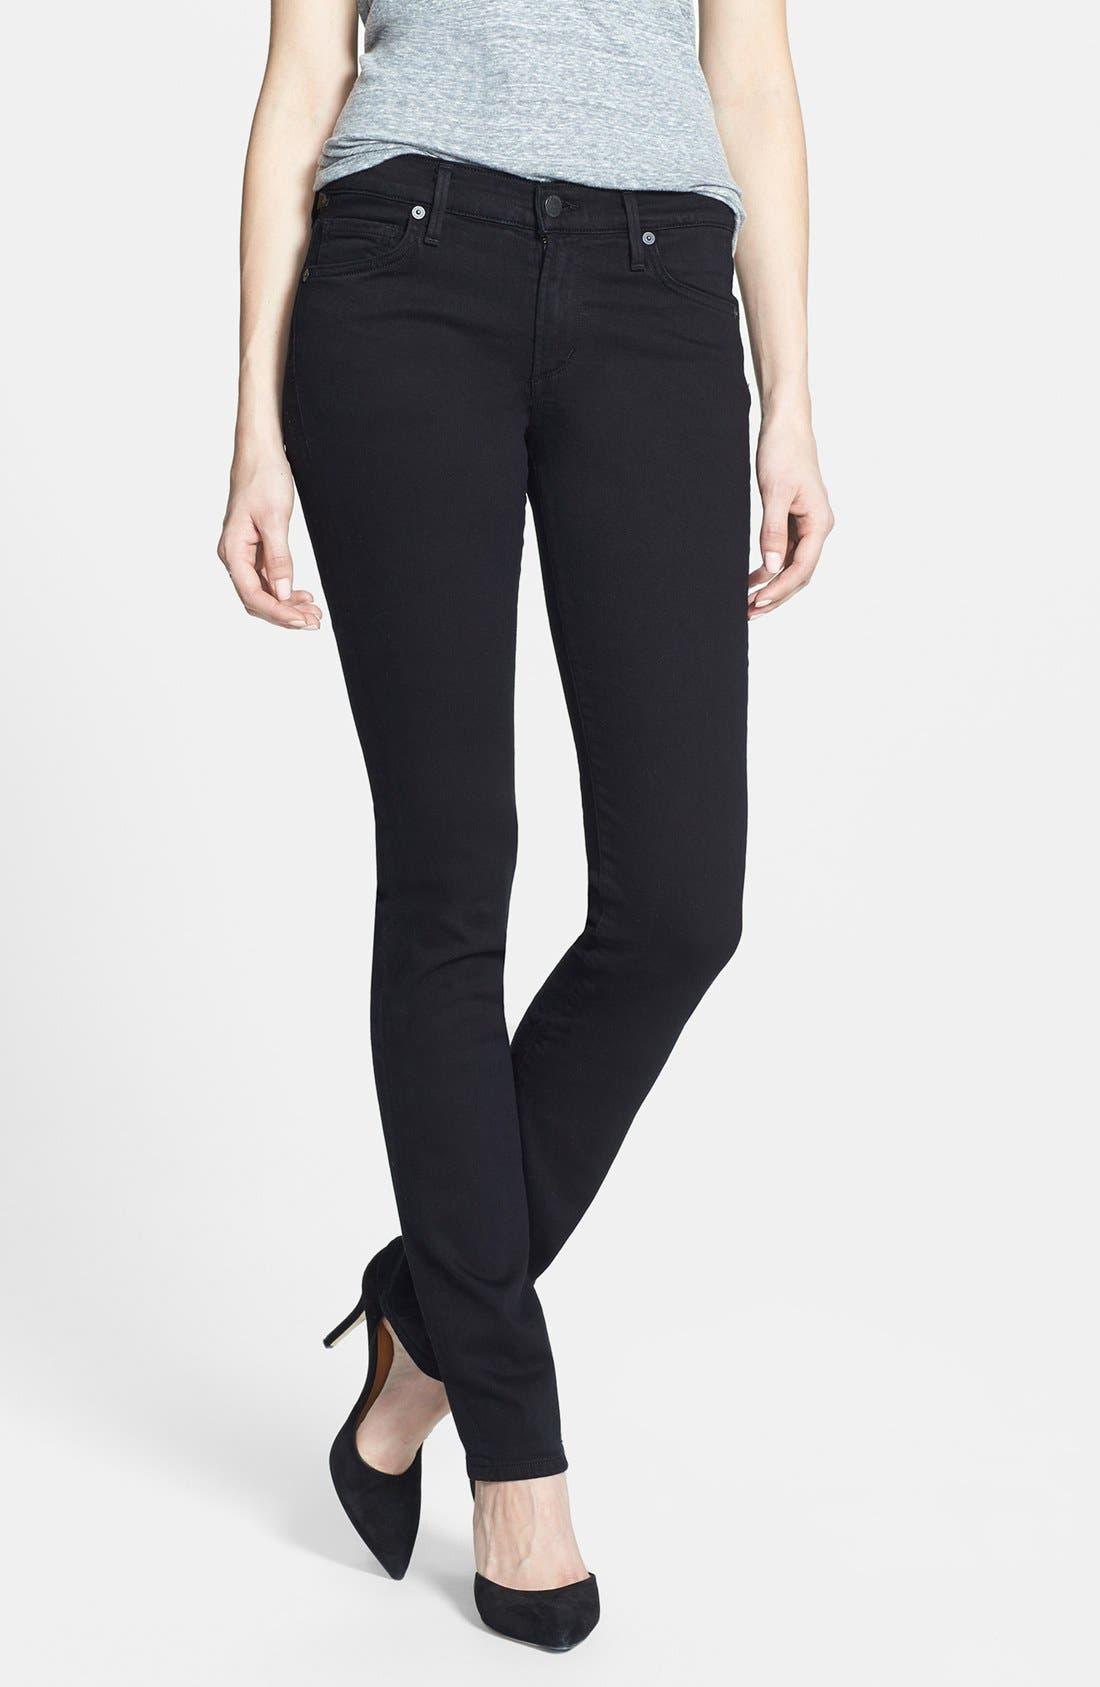 Alternate Image 1 Selected - Citizens of Humanity 'Ava' Straight Leg Jeans (Tuxedo)